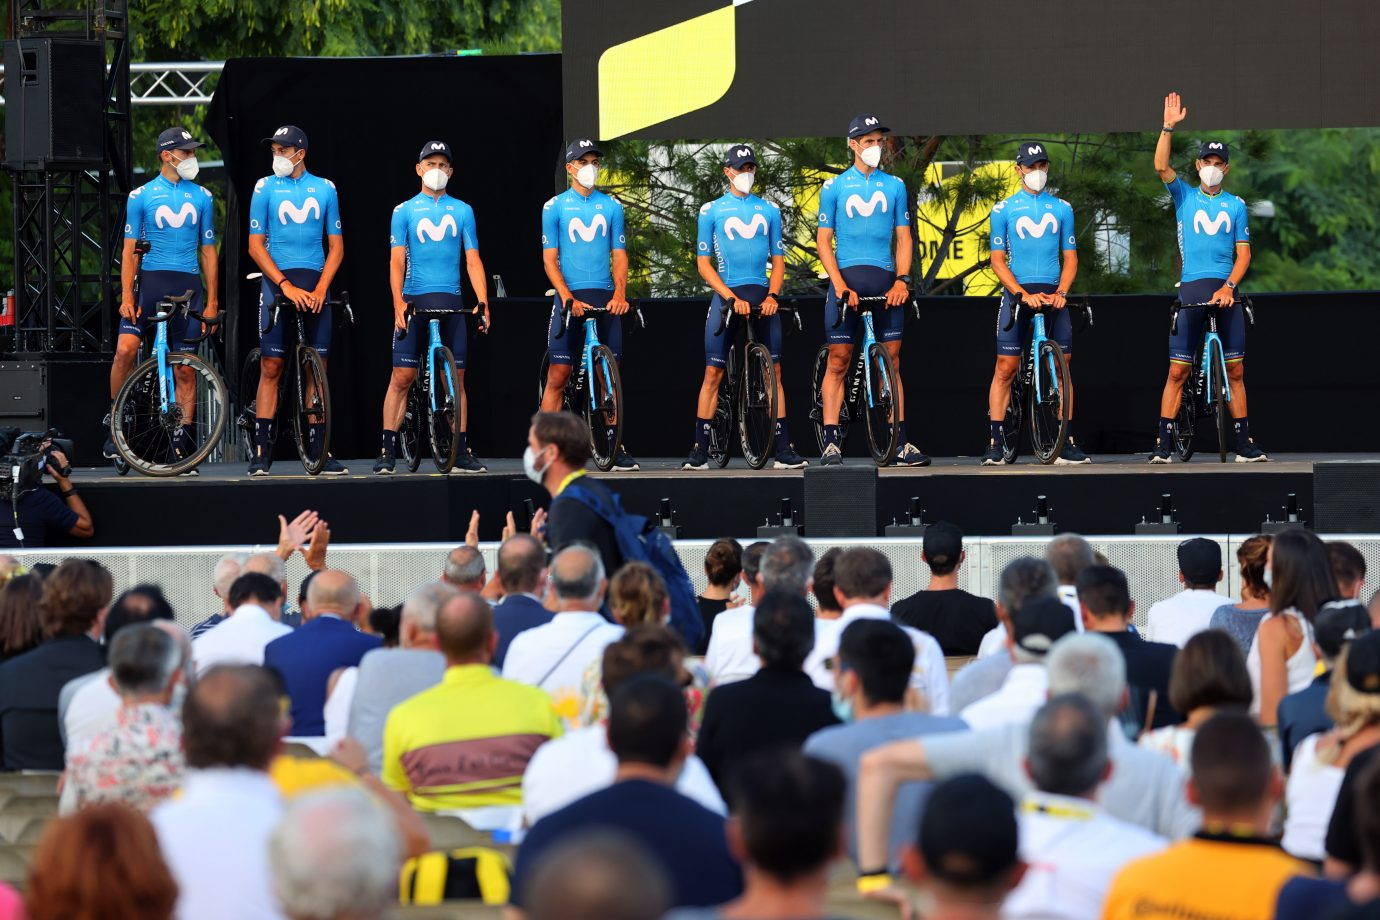 Imagen de la noticia 'Movistar Team gets into 2020 Tour-mood in Nice'